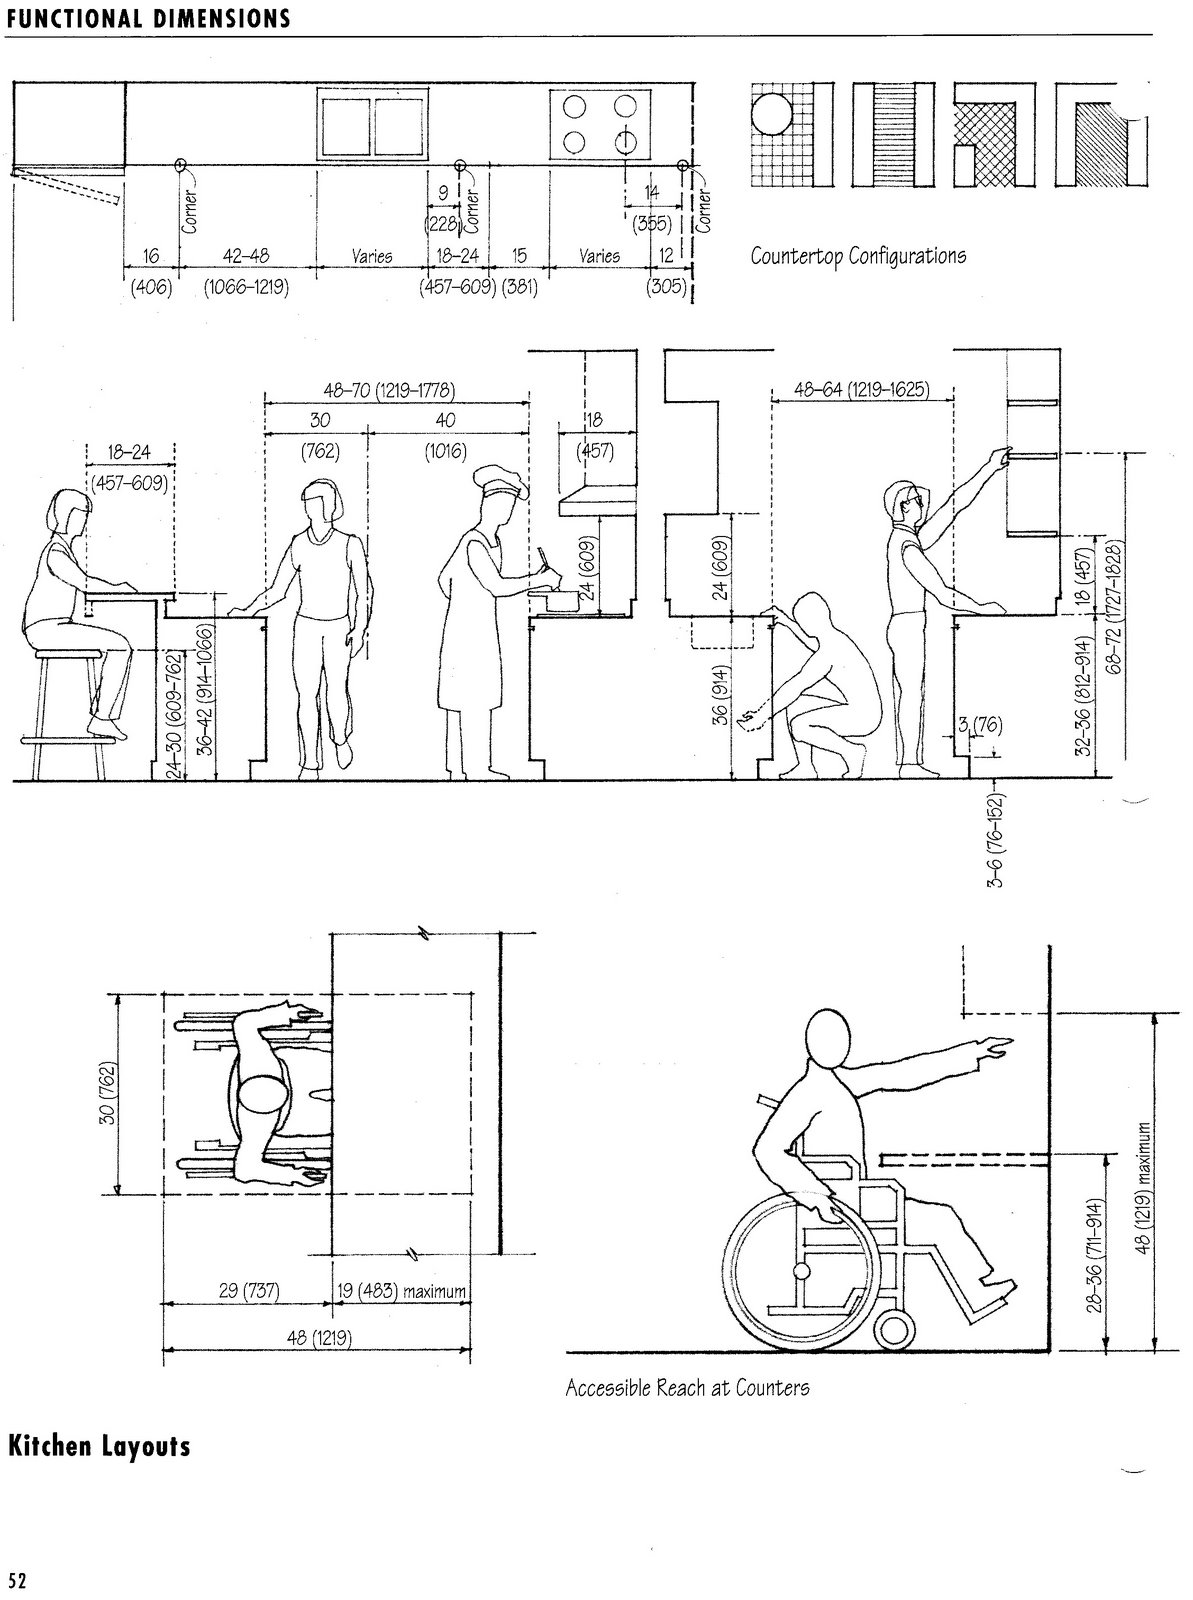 Functional Dimensions Kitchen Layout